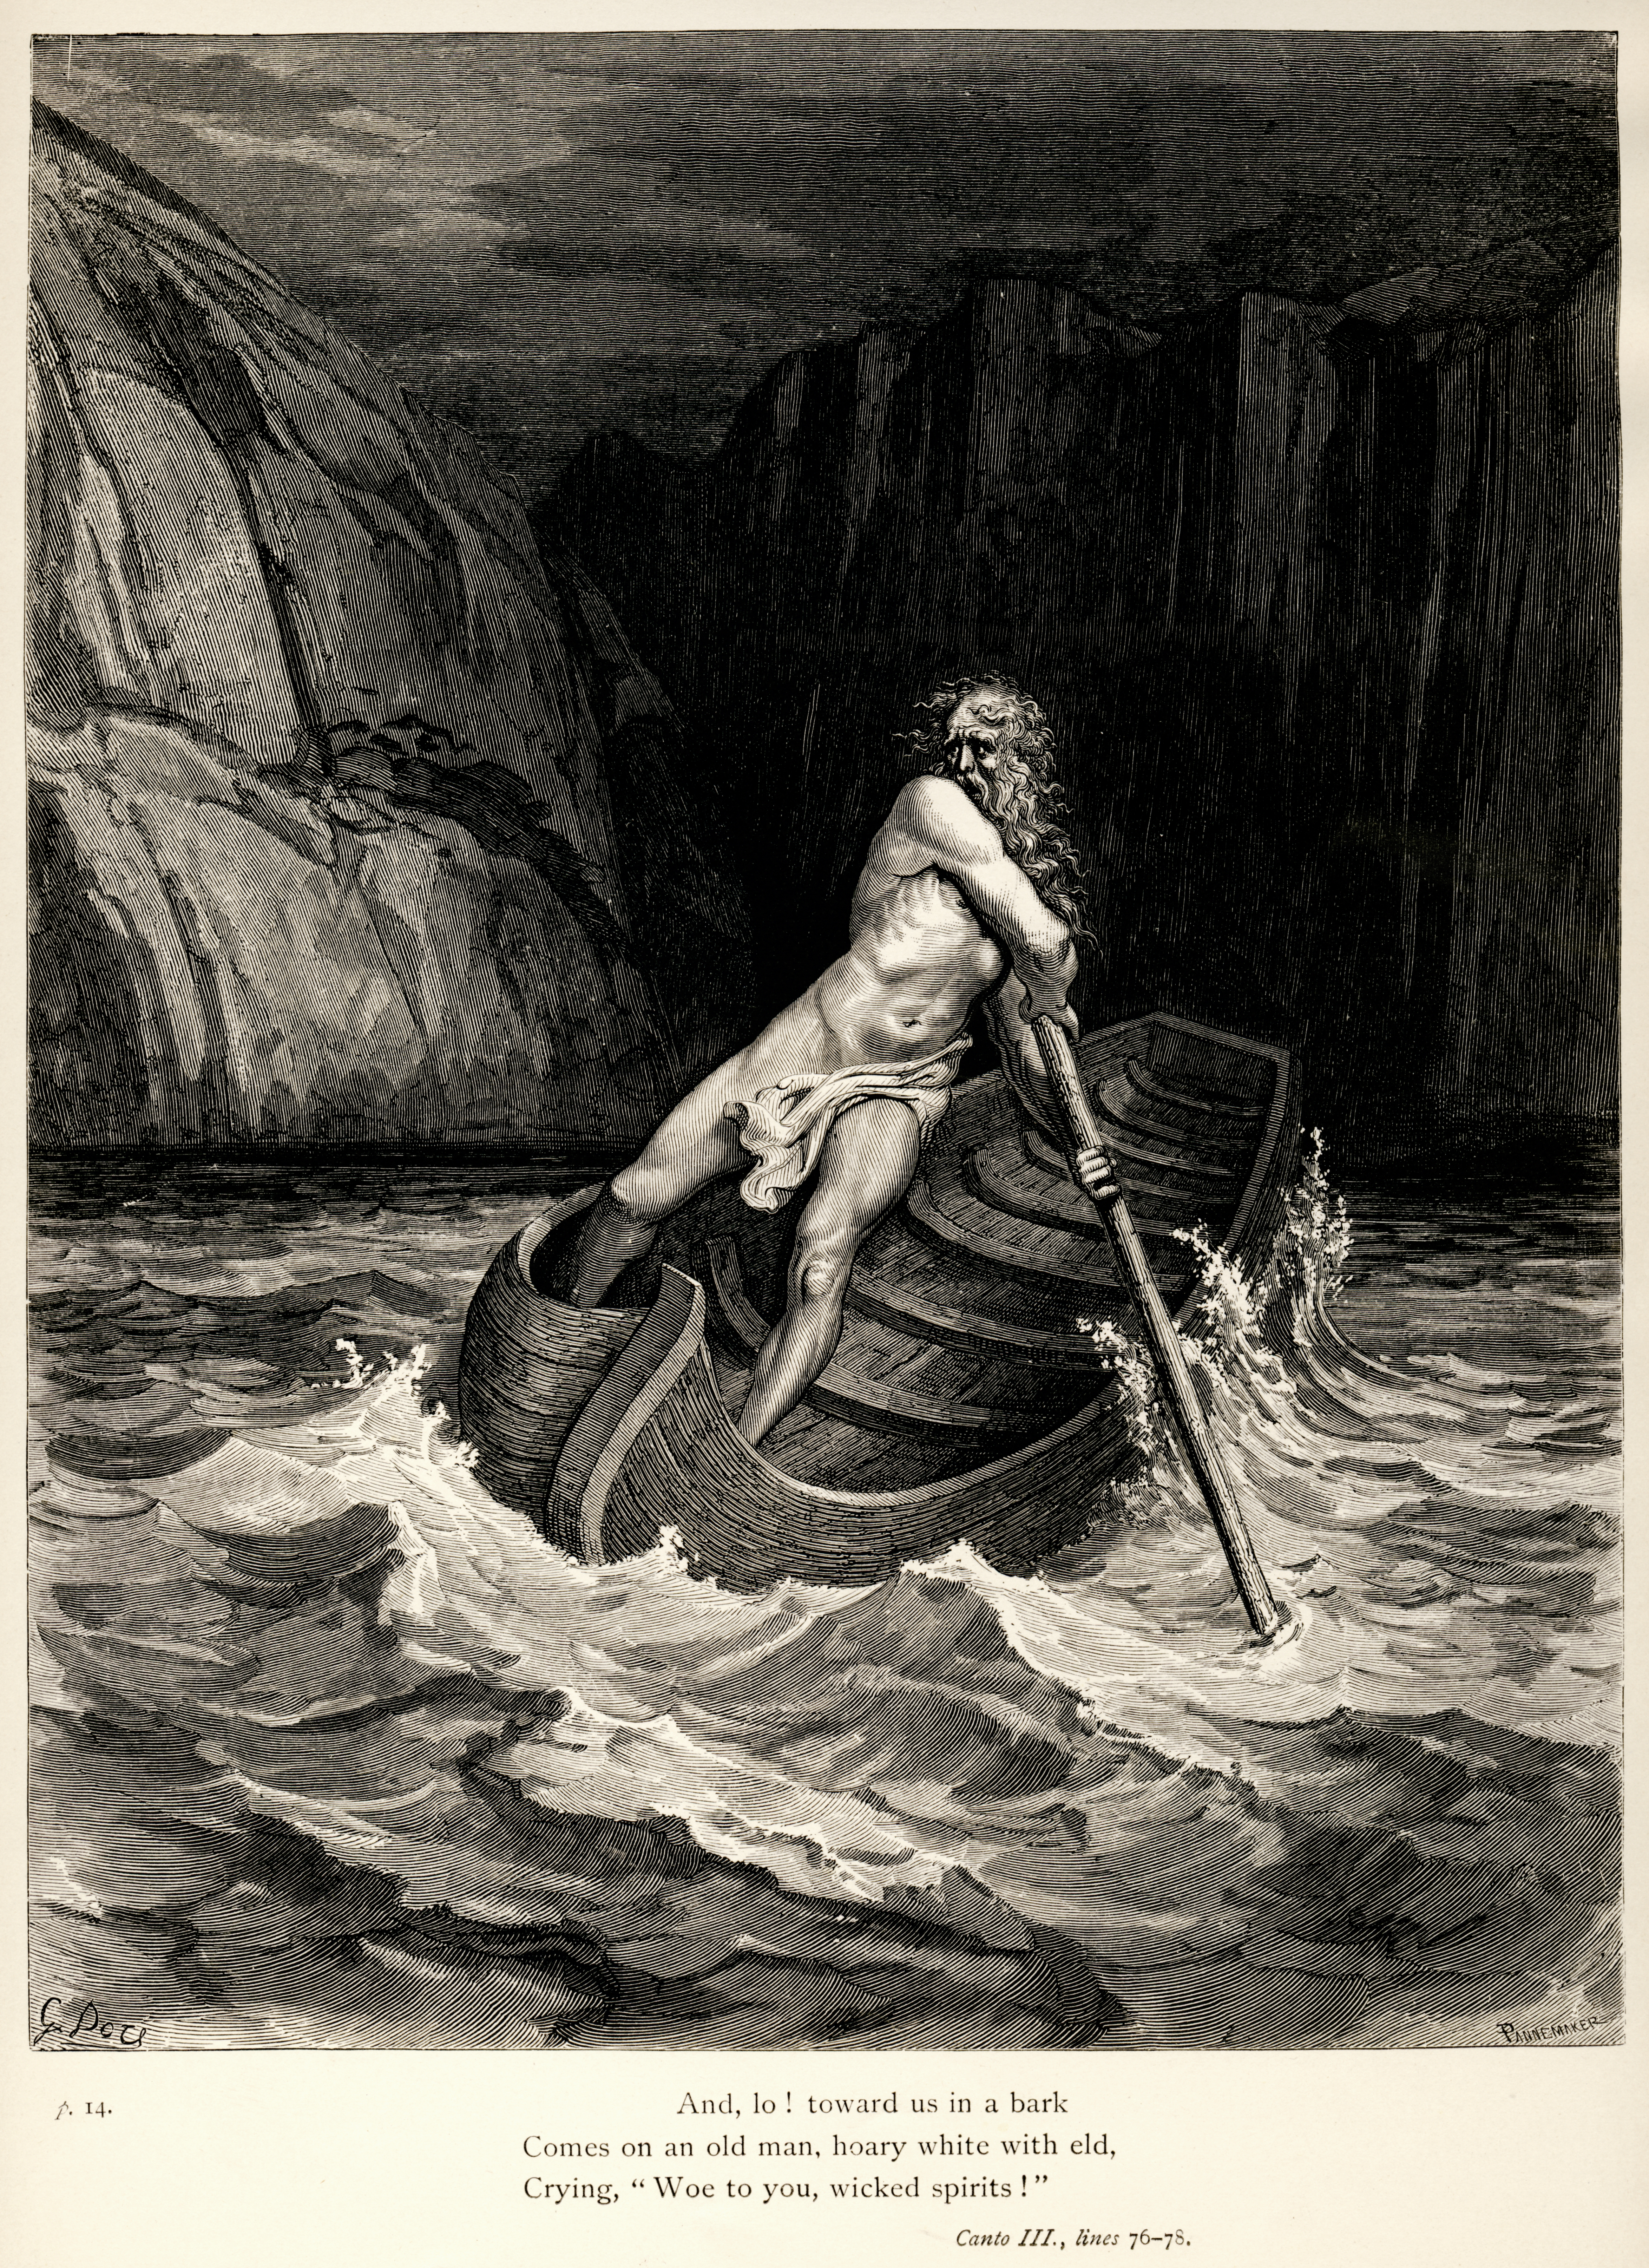 Gustave Dores Illustration To Dantes Inferno Plate IX Canto III Arrival Of Charon